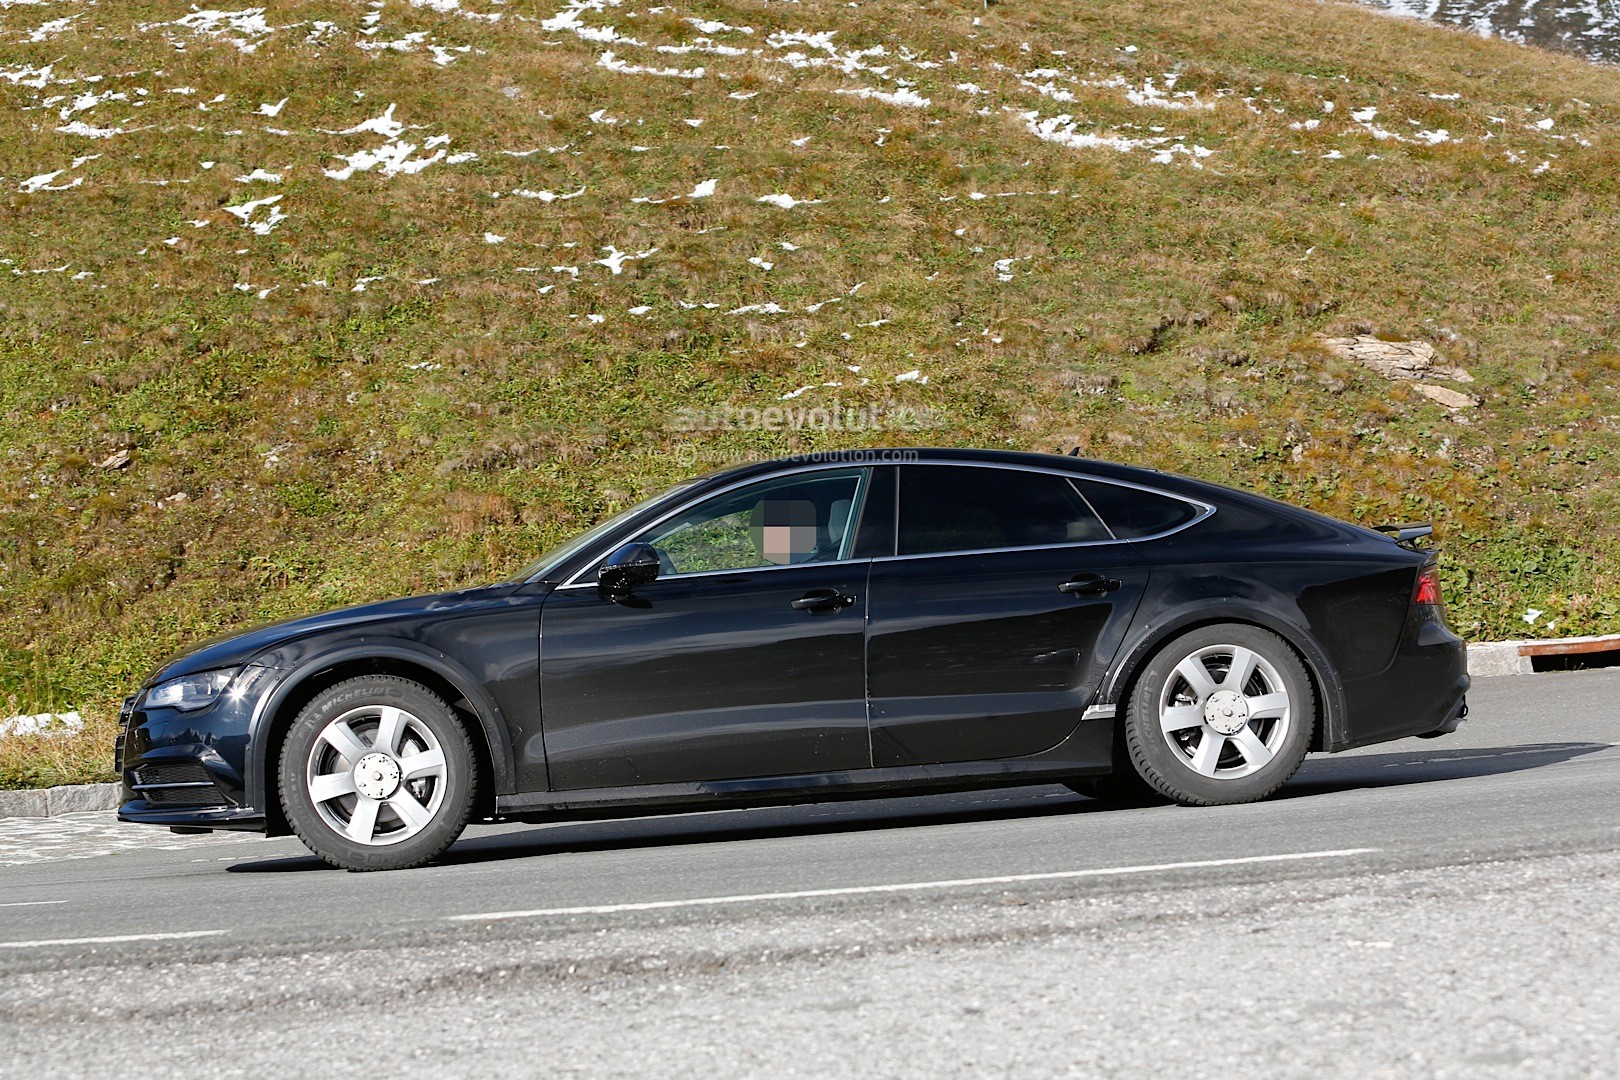 Spyshots 2018 Audi A7 Chassis Testing Mule Seen For The